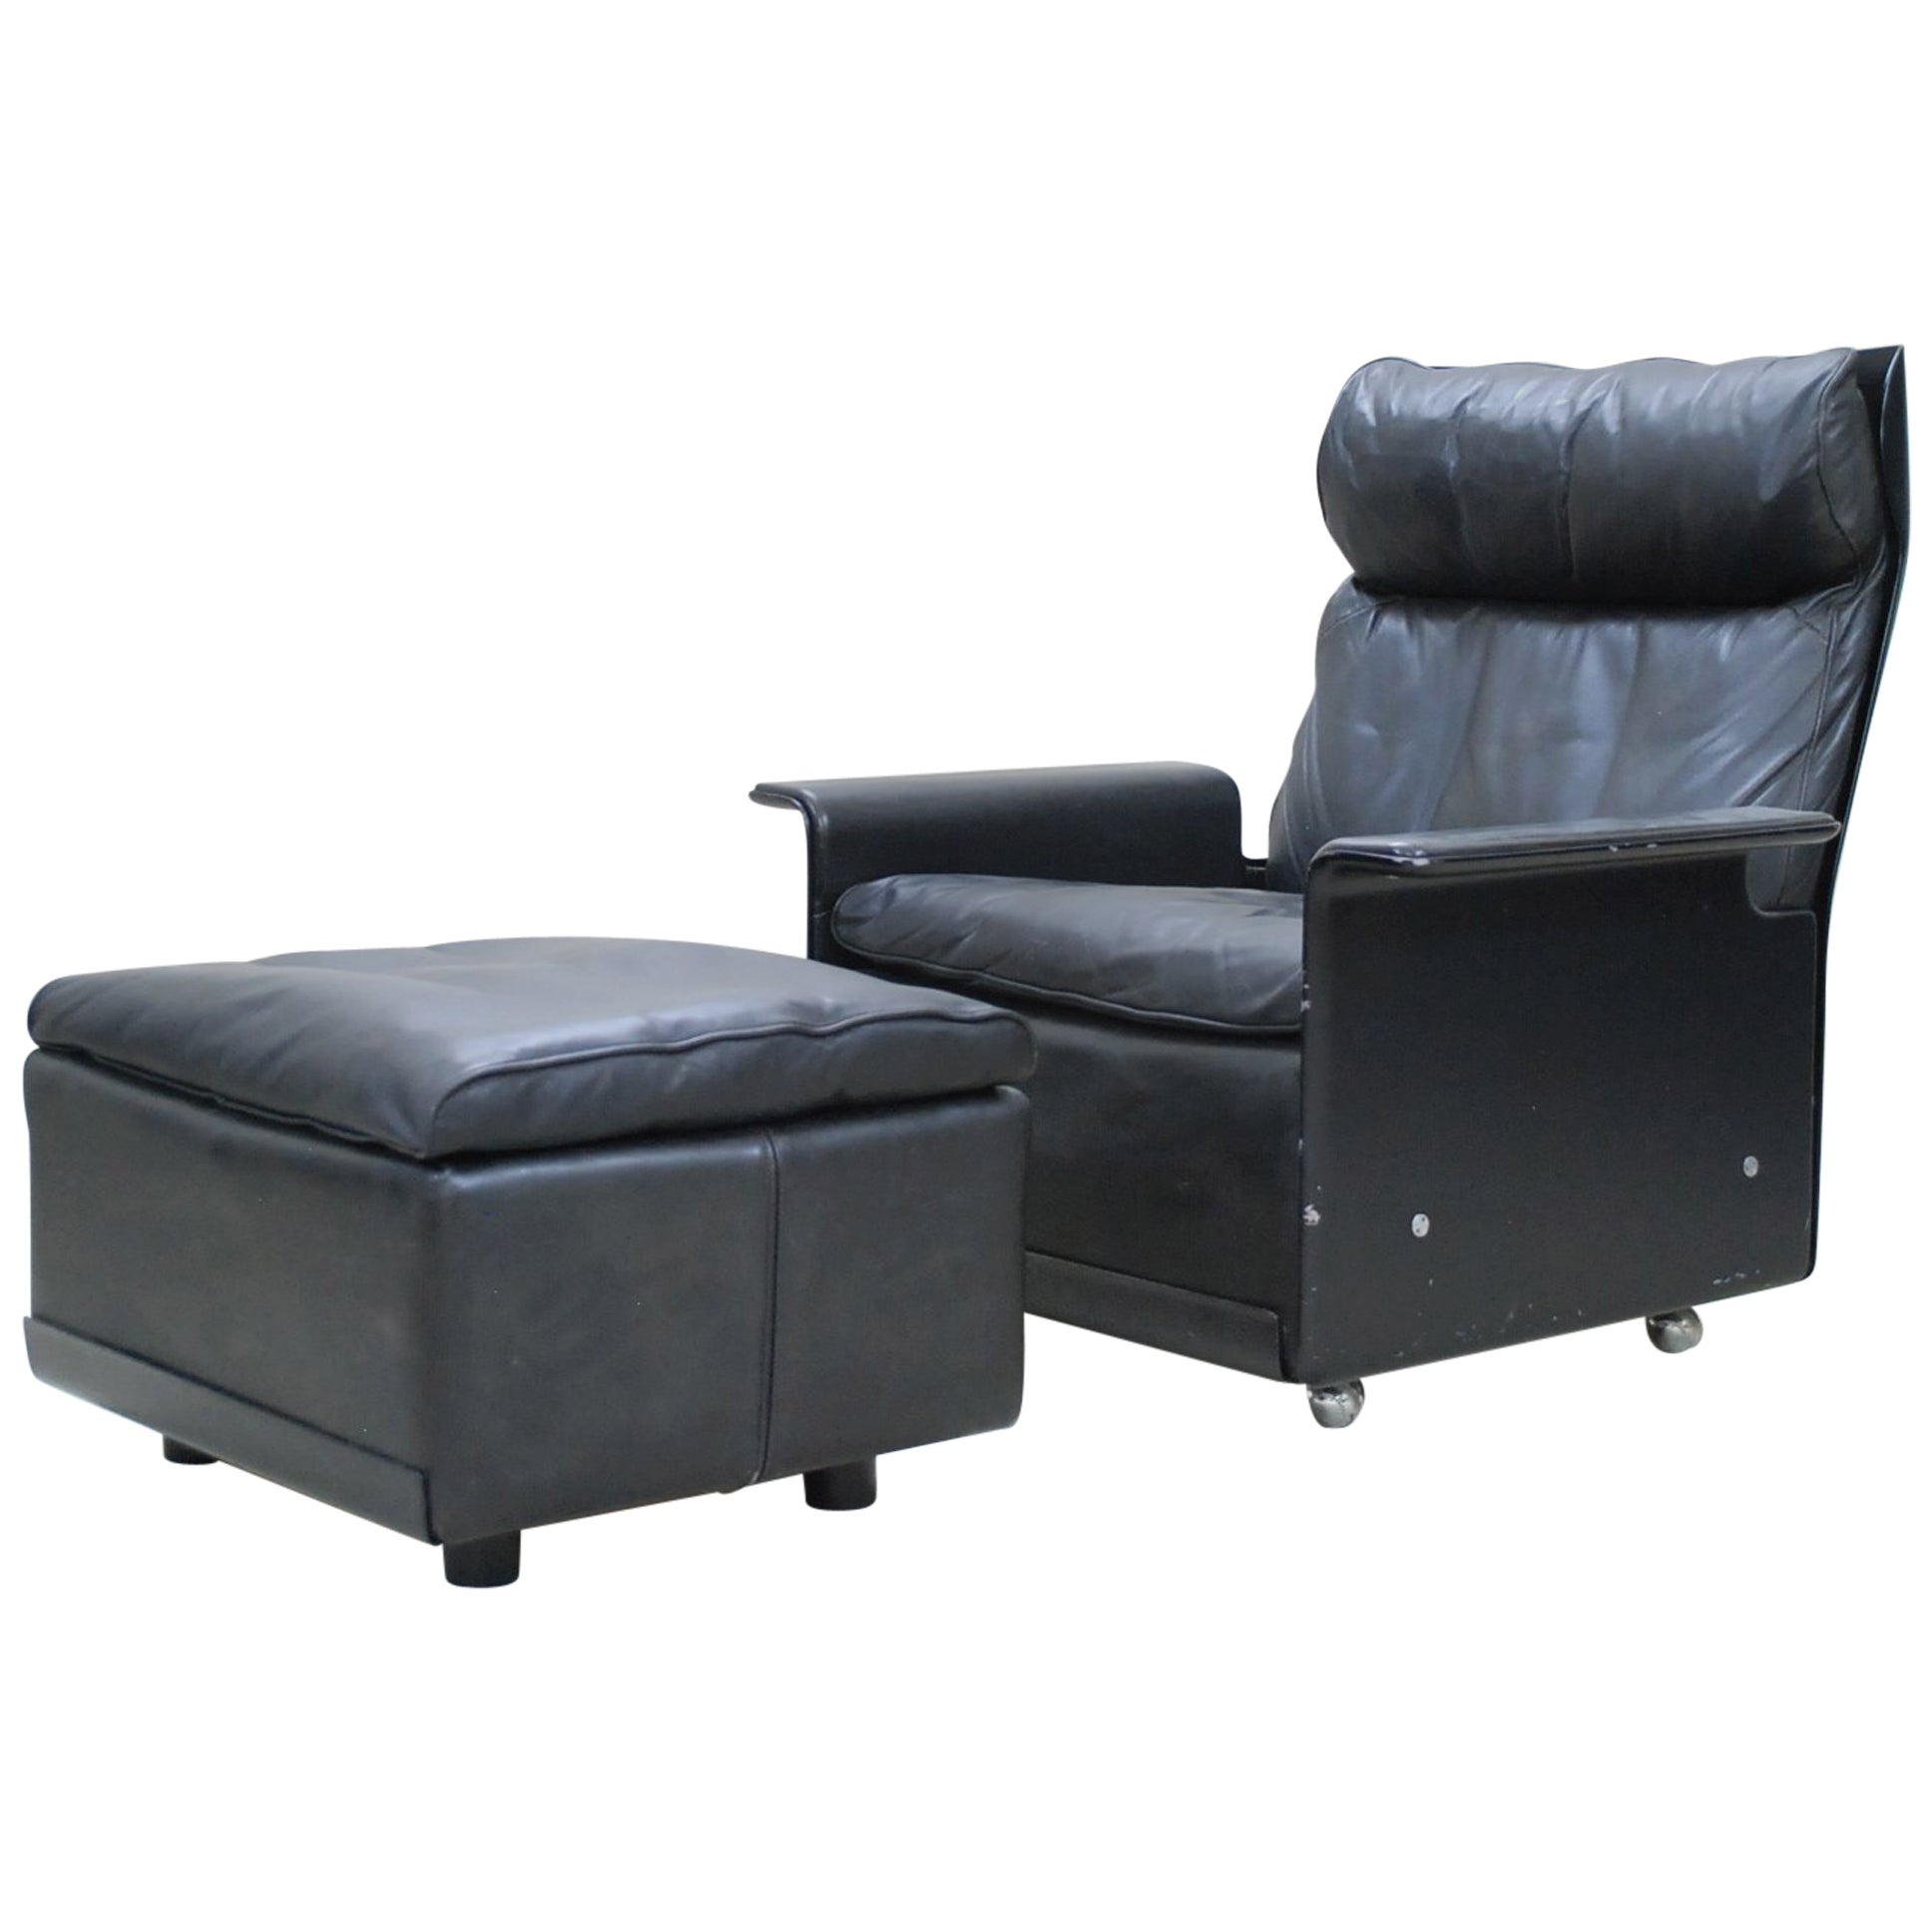 Dieter Rams Model 620 for Vitsoe Leather Lounge Chair and Ottoman